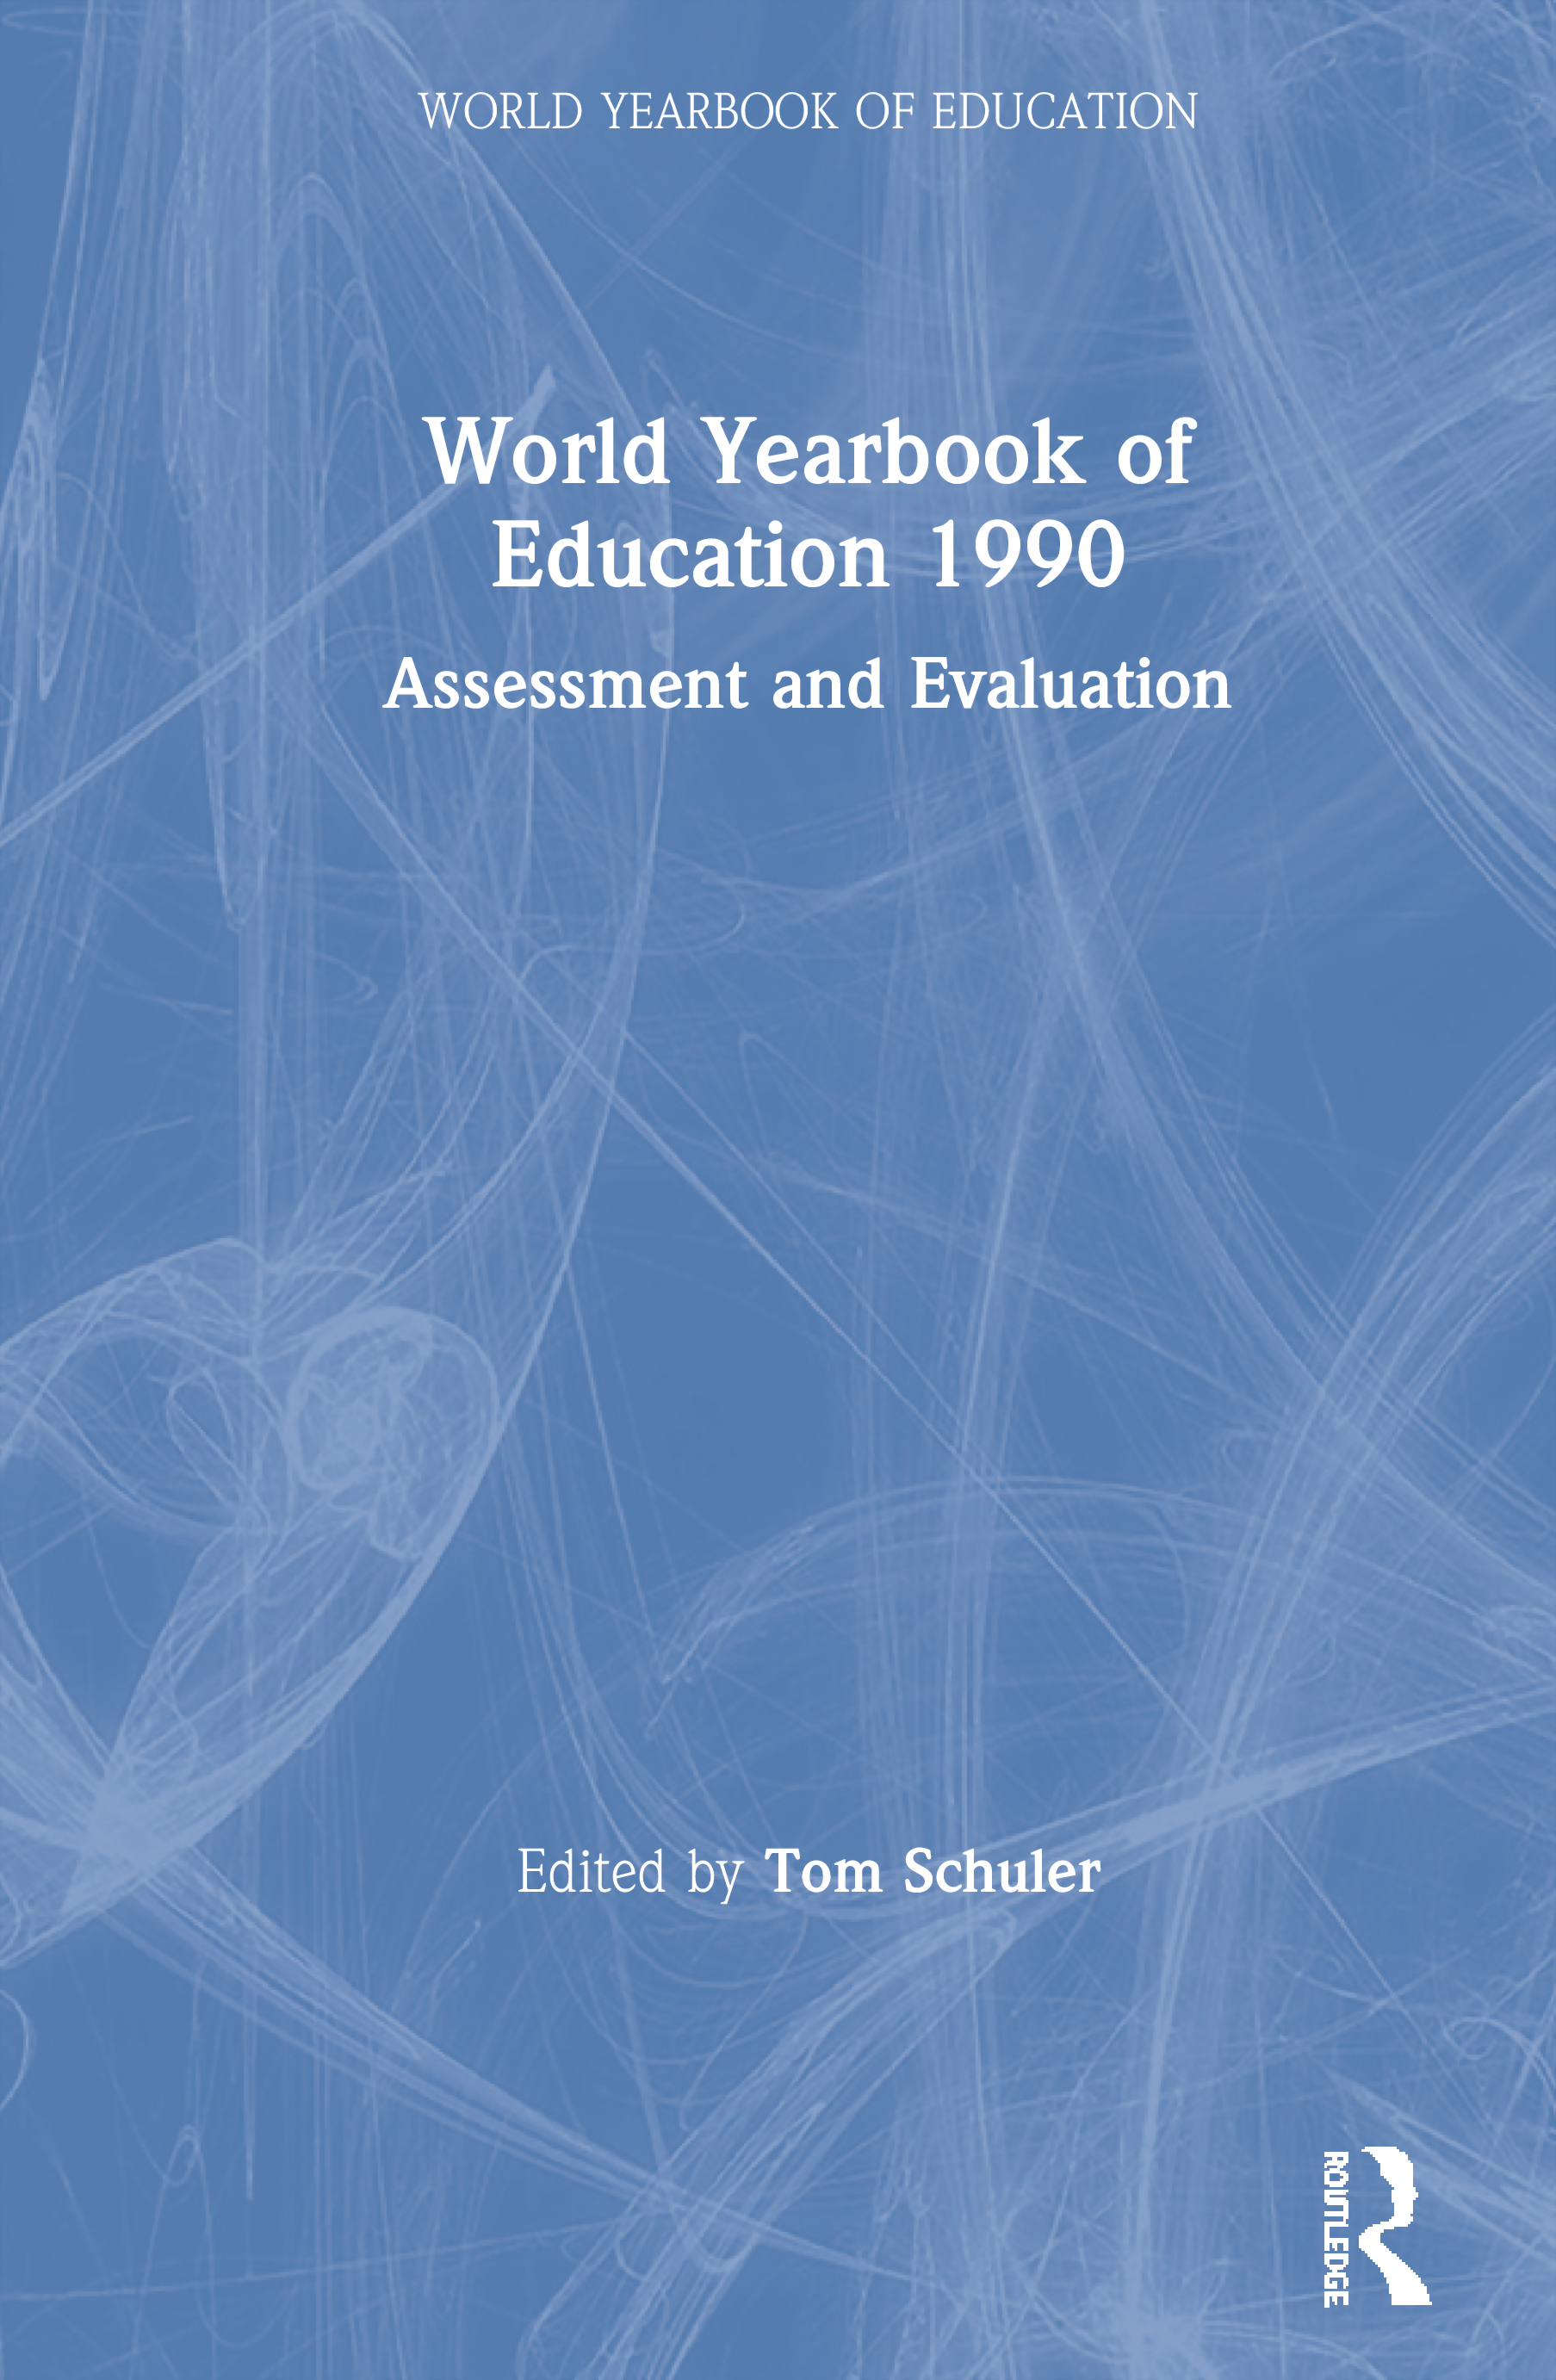 World Yearbook of Education 1990: Assessment and Evaluation book cover